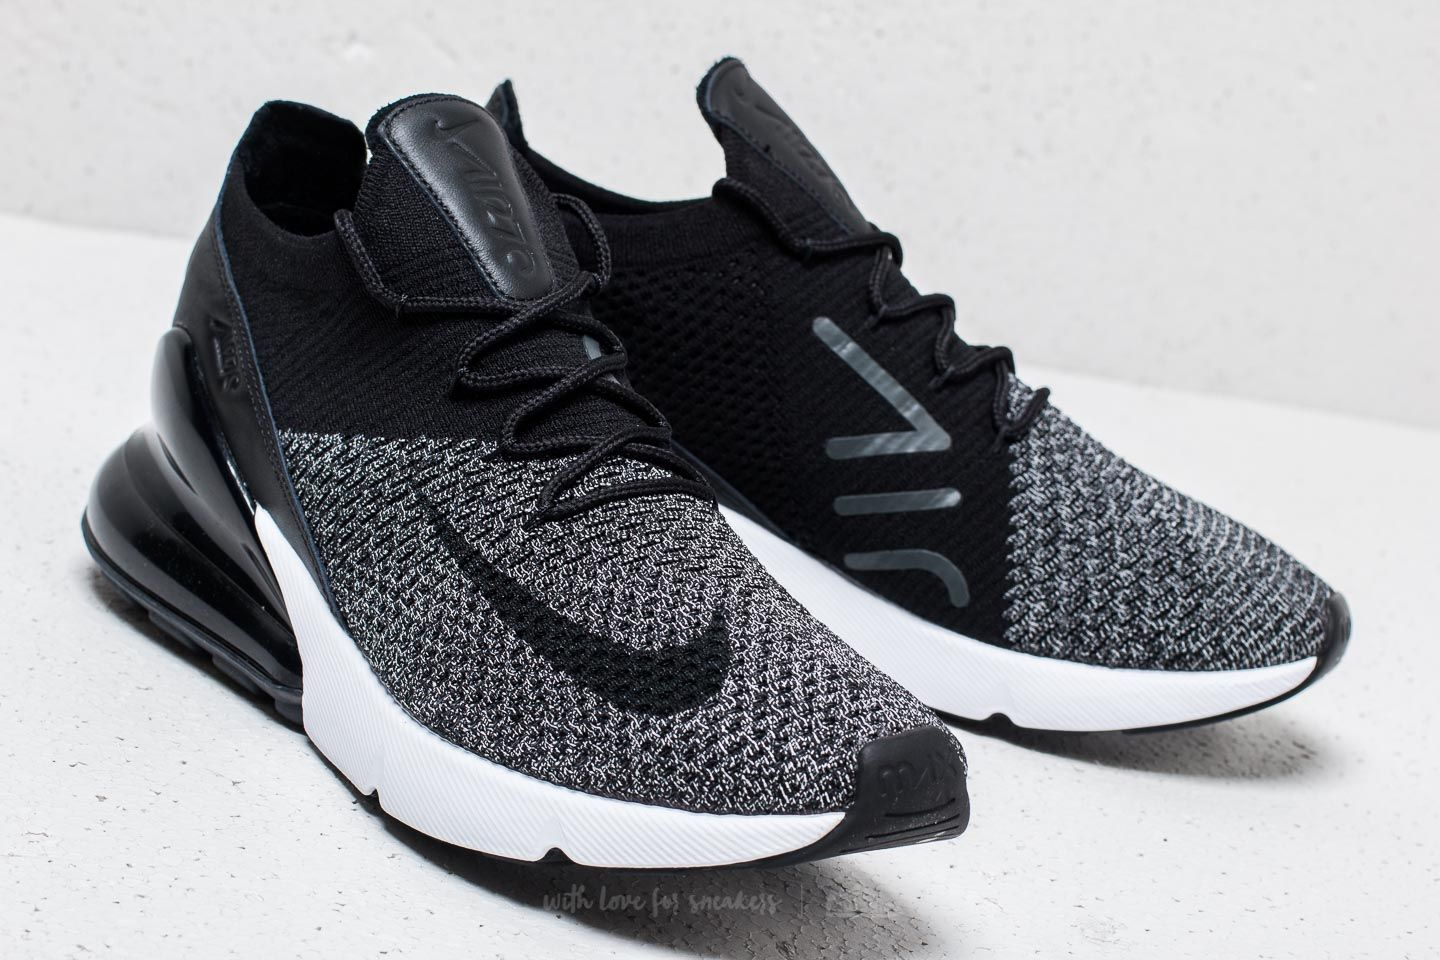 Nike Air Max 270 Flyknit Womens BlackWhite Shoes UK